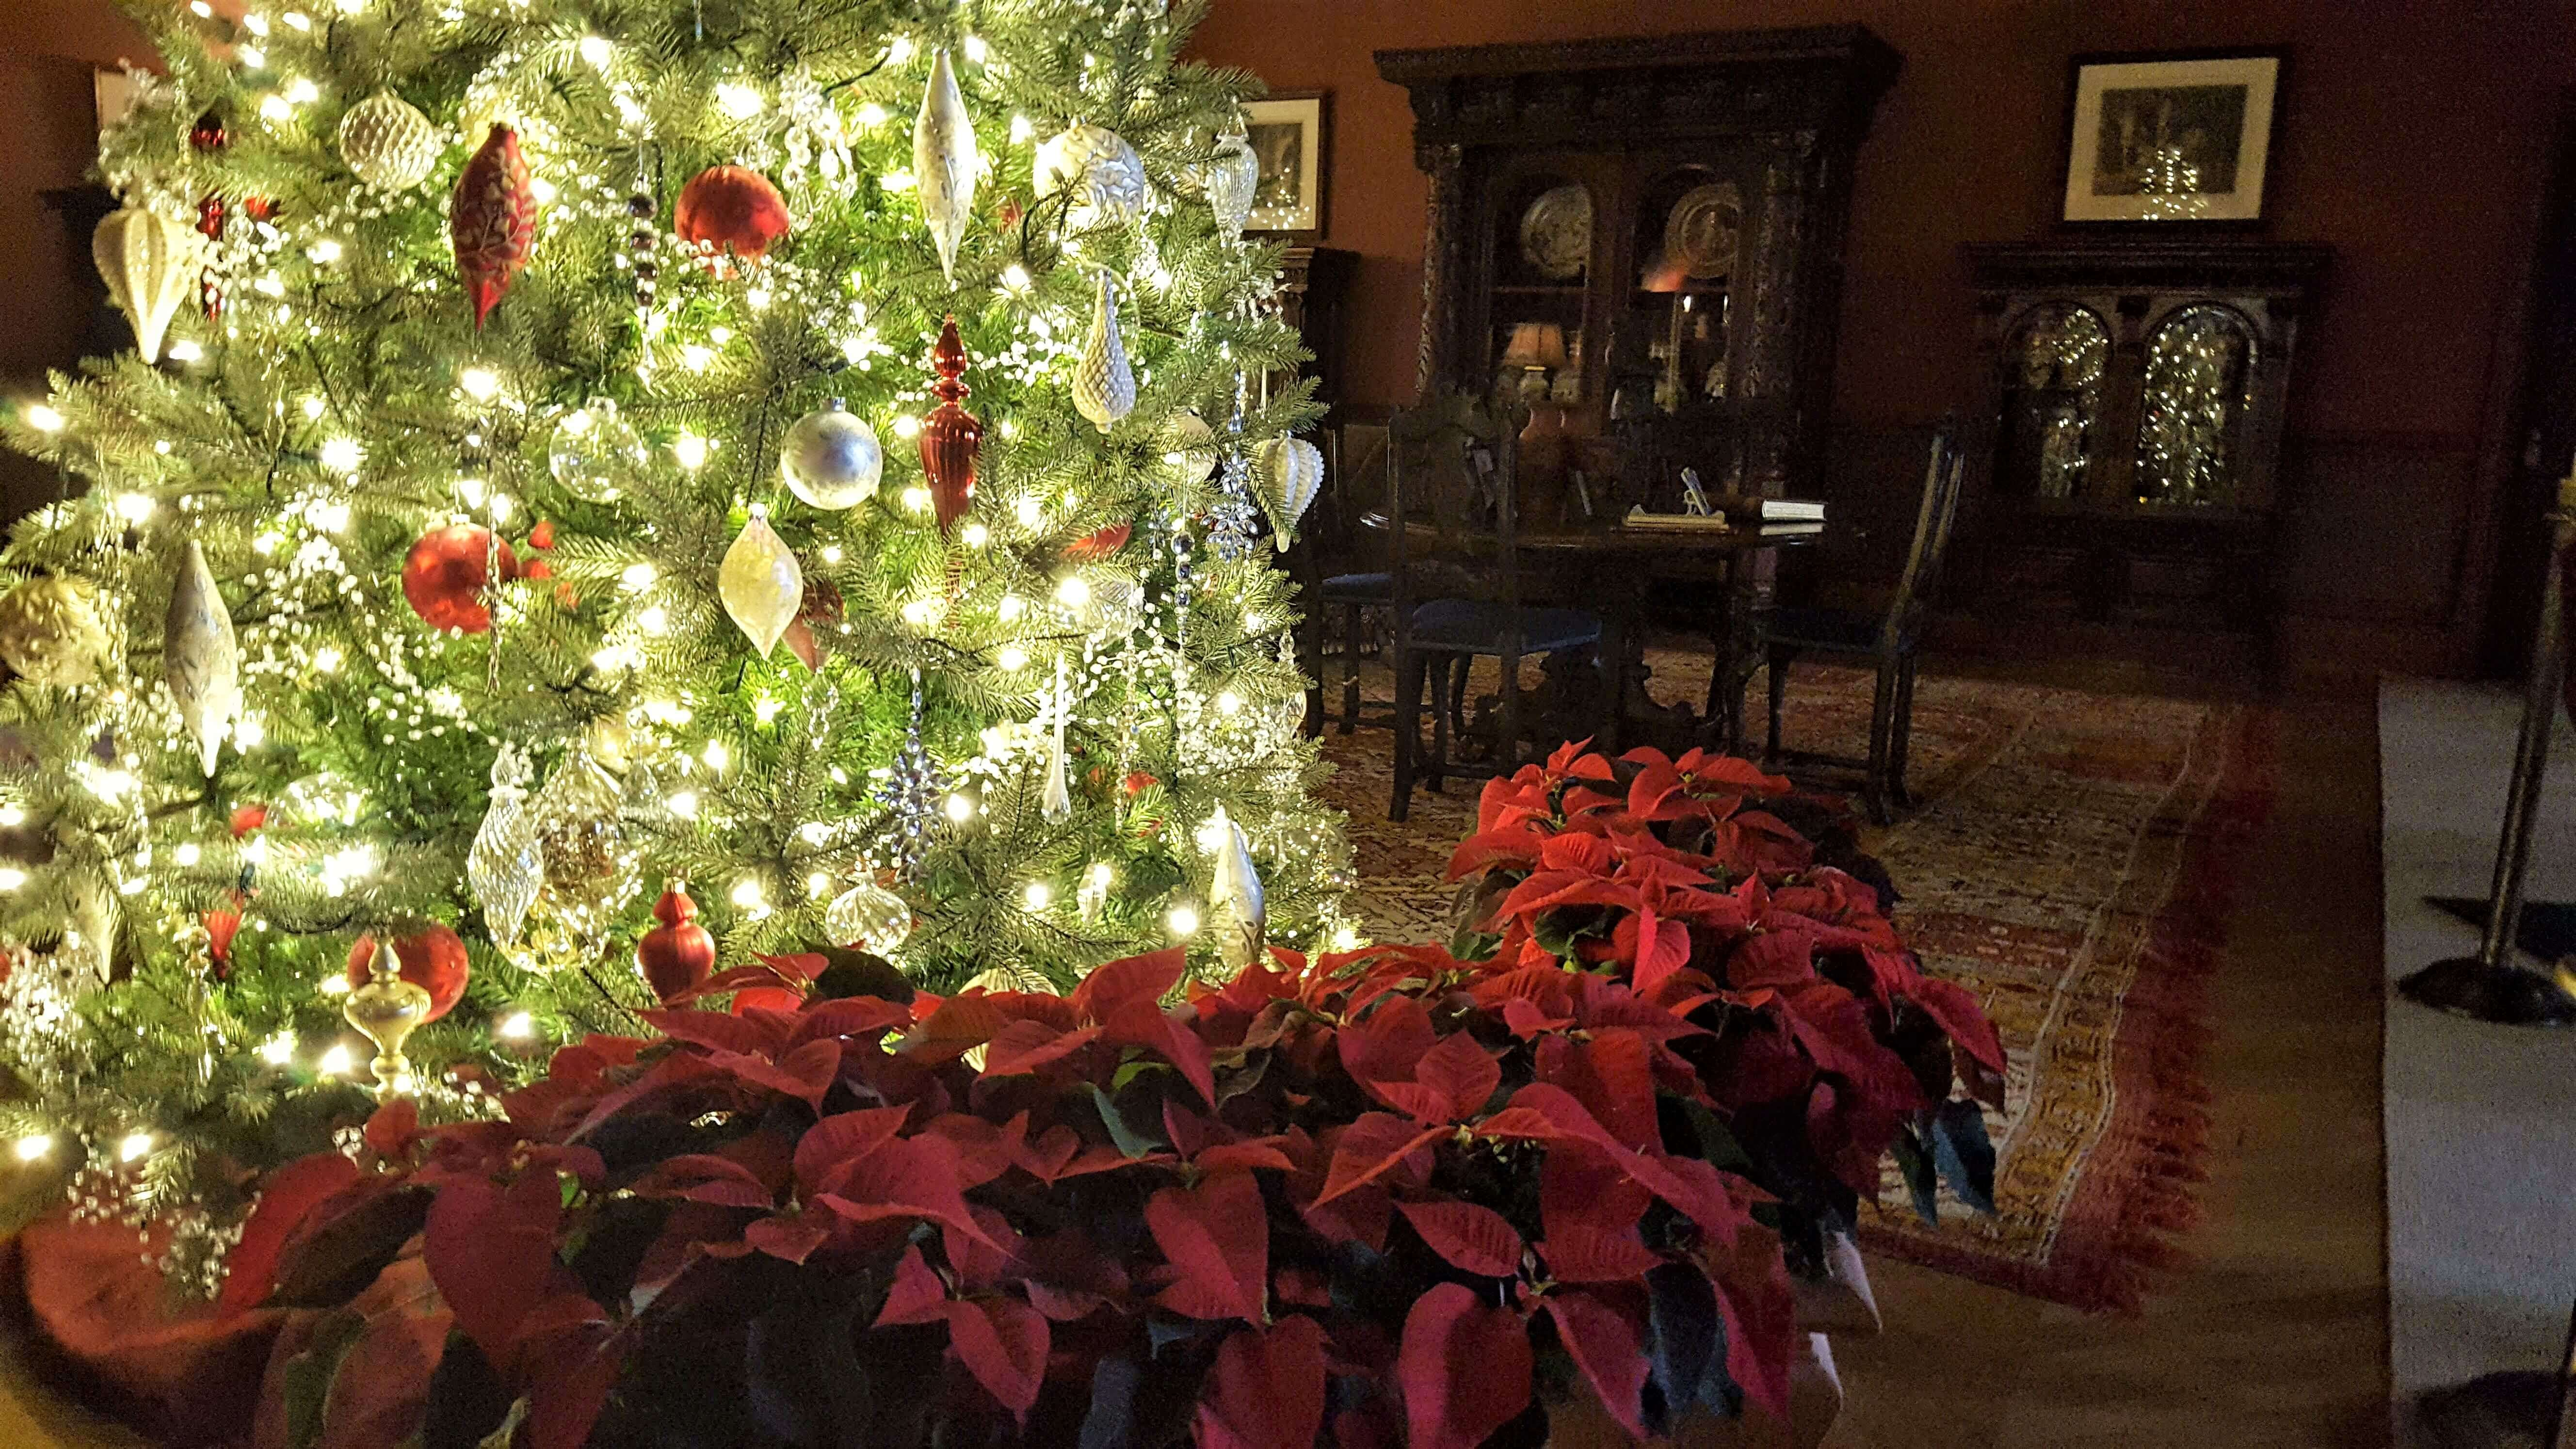 Tree and poinsettia at the Biltmore Estate